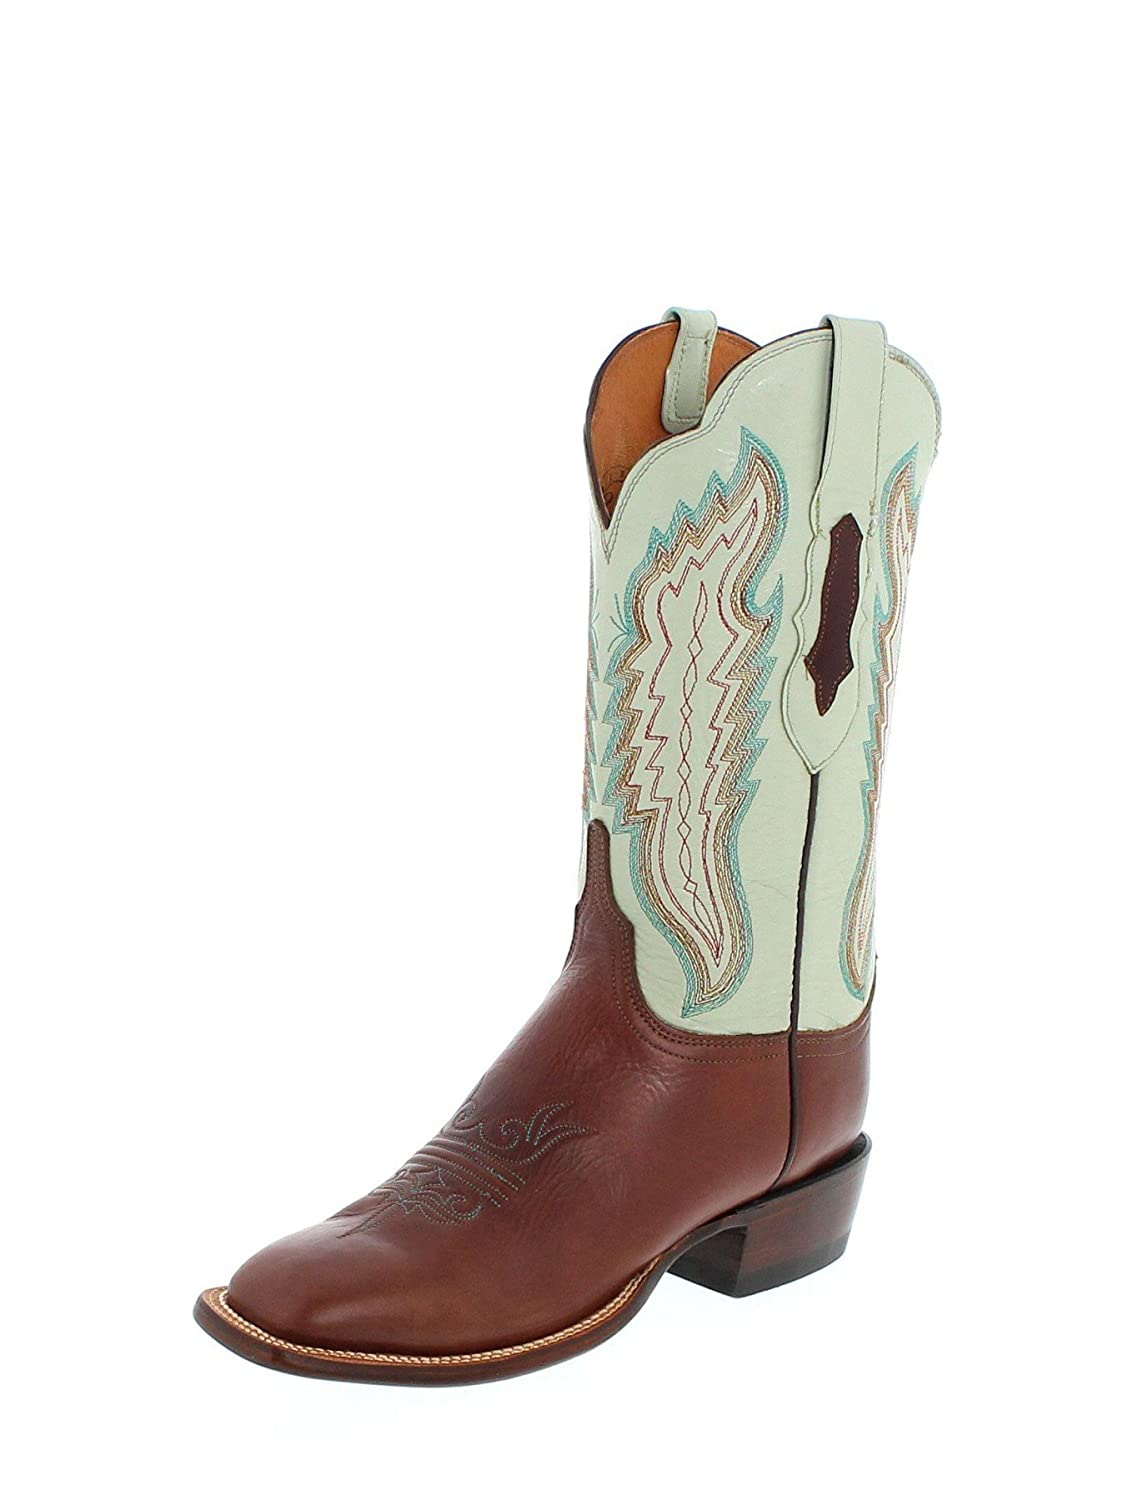 7b9c167e565 Lucchese Boots CL8006 Western Riding Womens Boots: Amazon.co.uk ...